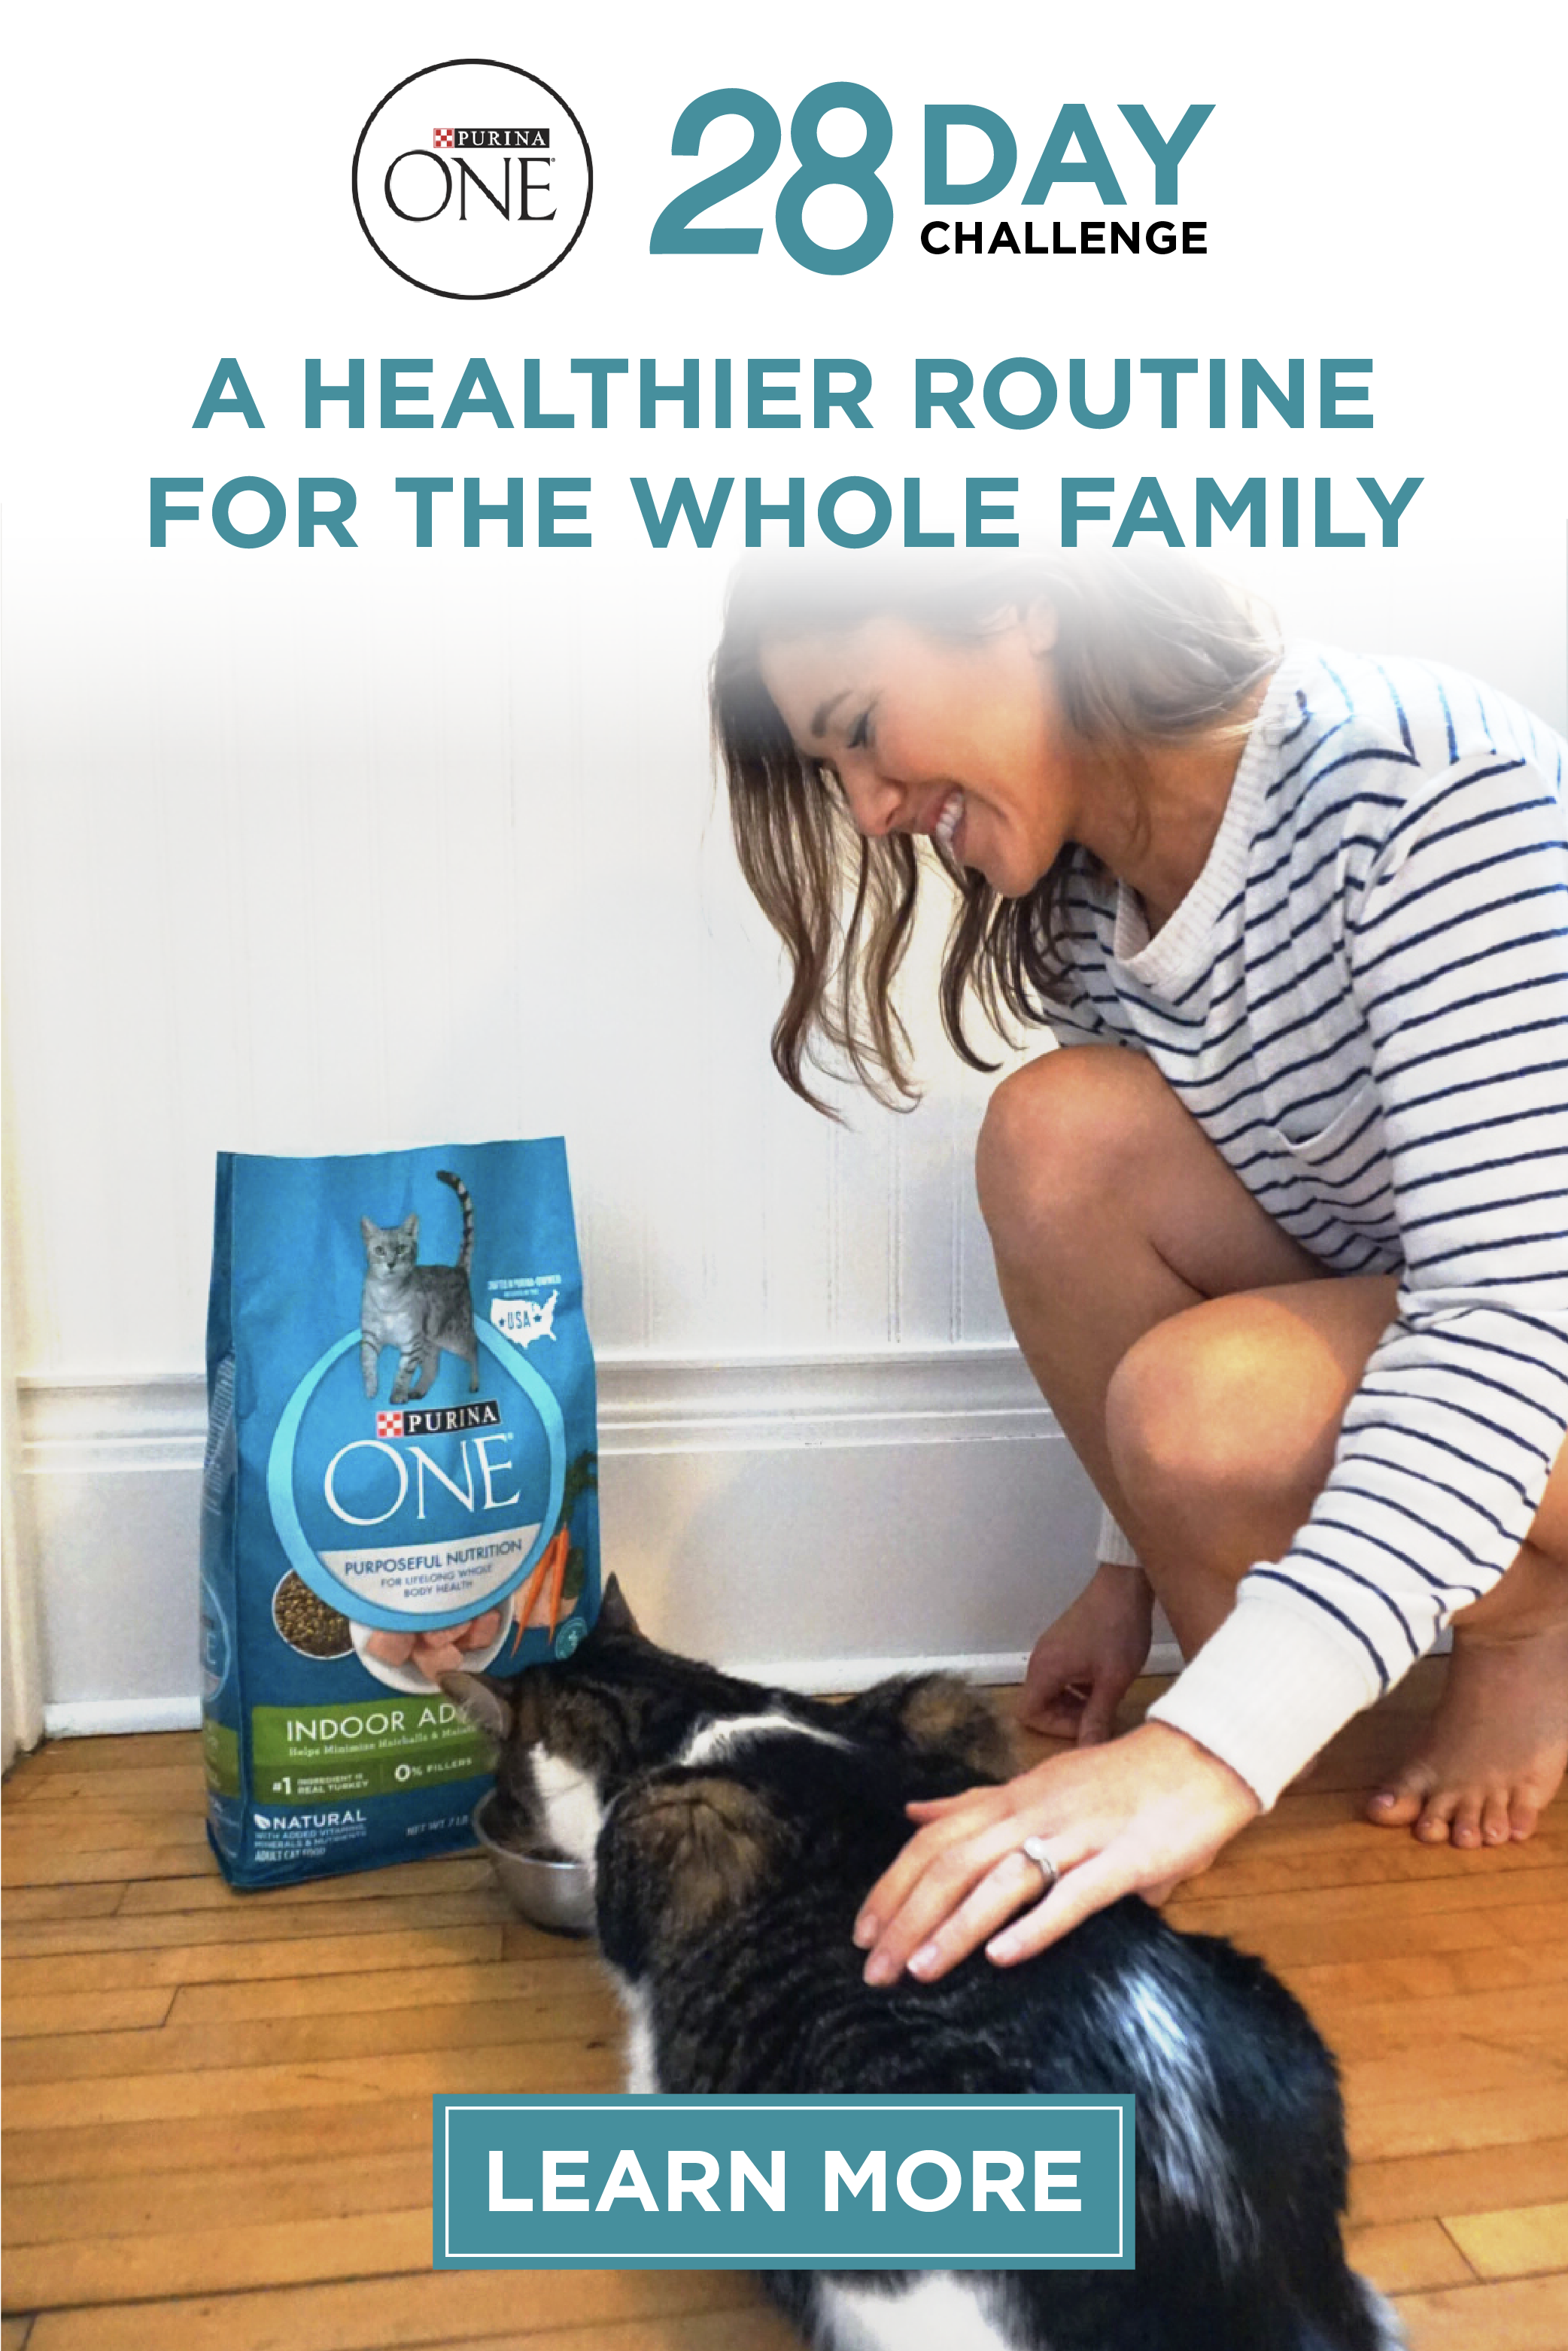 Healthy Choices at Home for the Whole Family - Everyday Chiffon